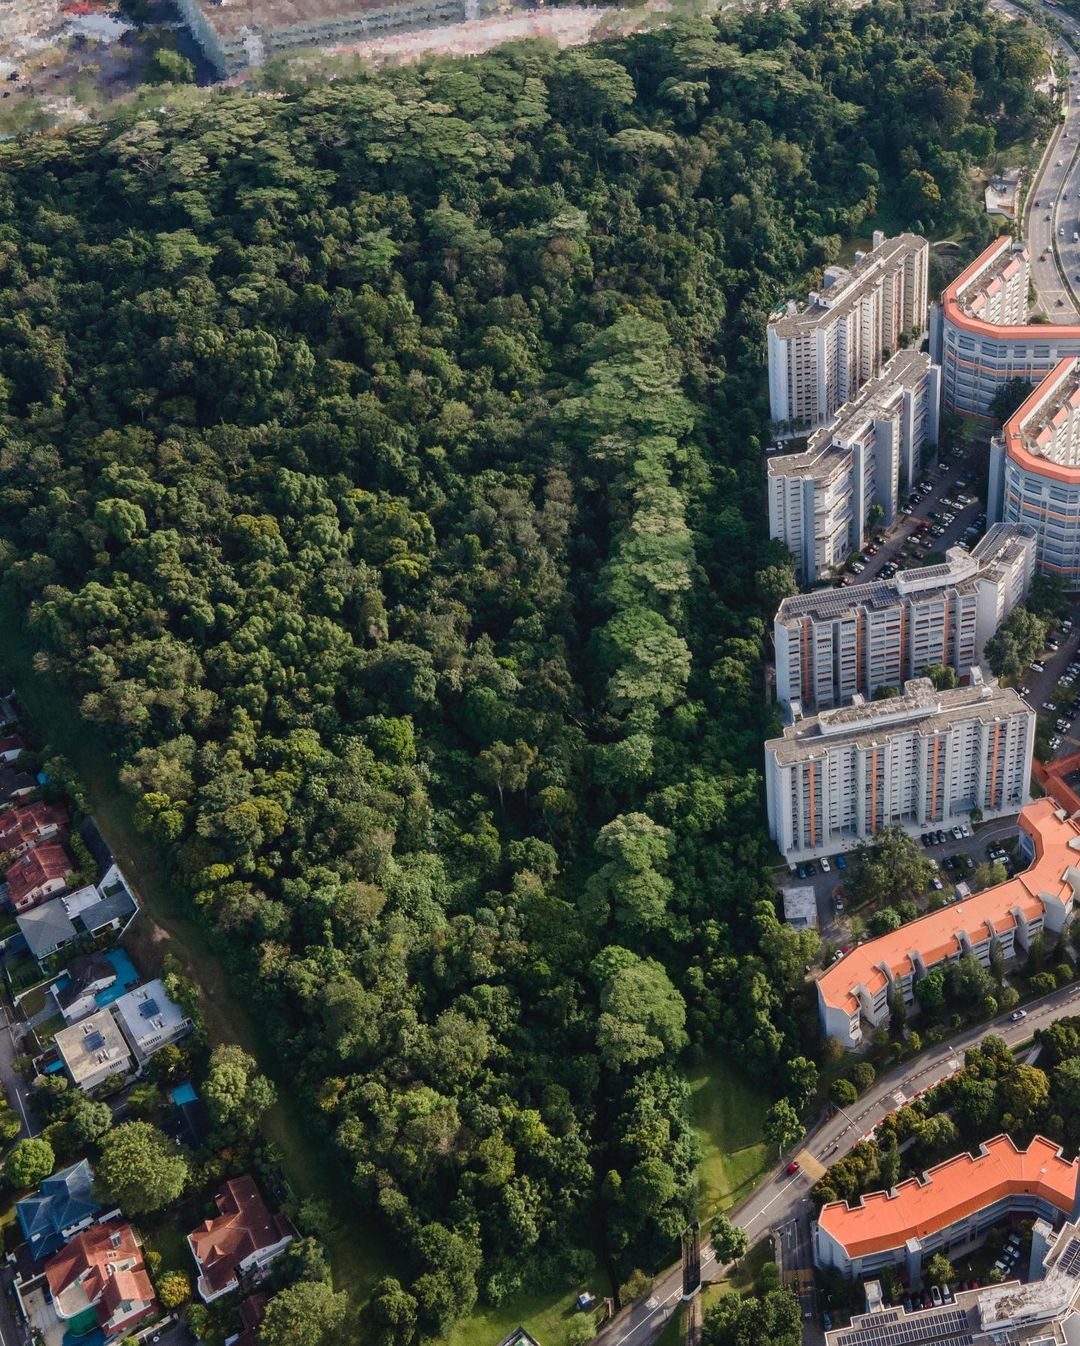 Maju Forest covers 24 hectares, or about 33 soccer fields